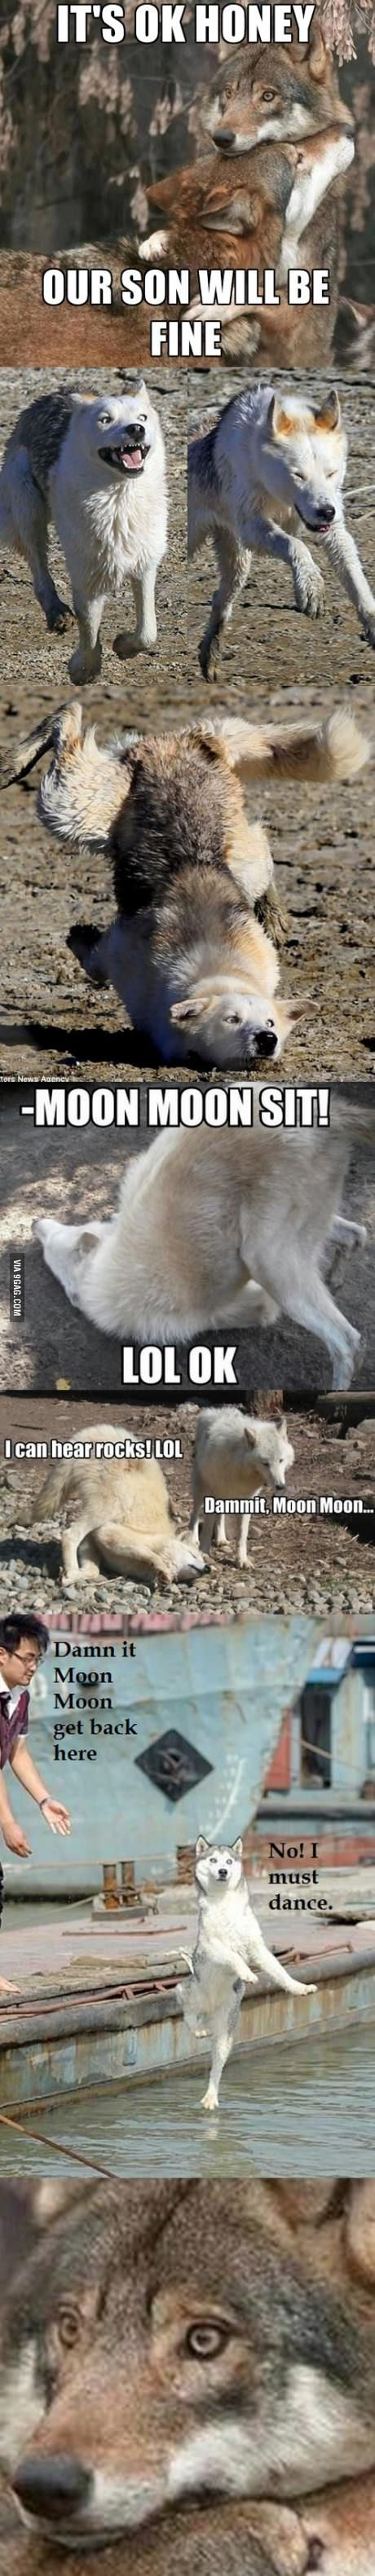 I just discovers the great Moon Moon